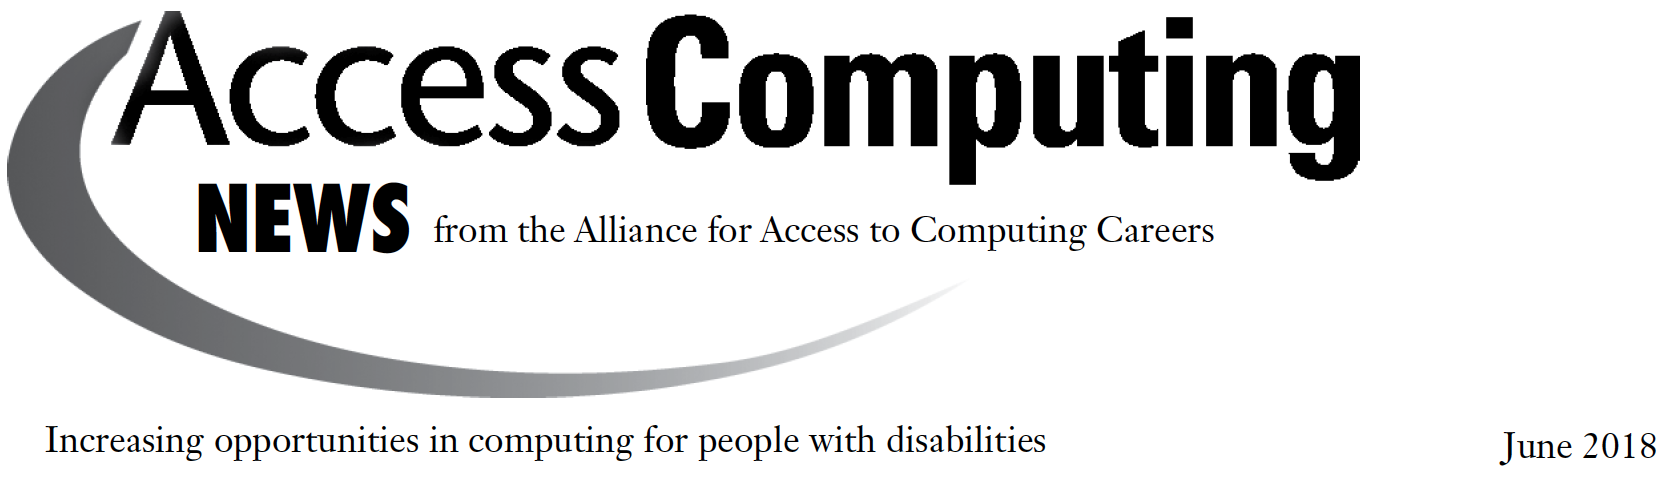 AccessComputing News header